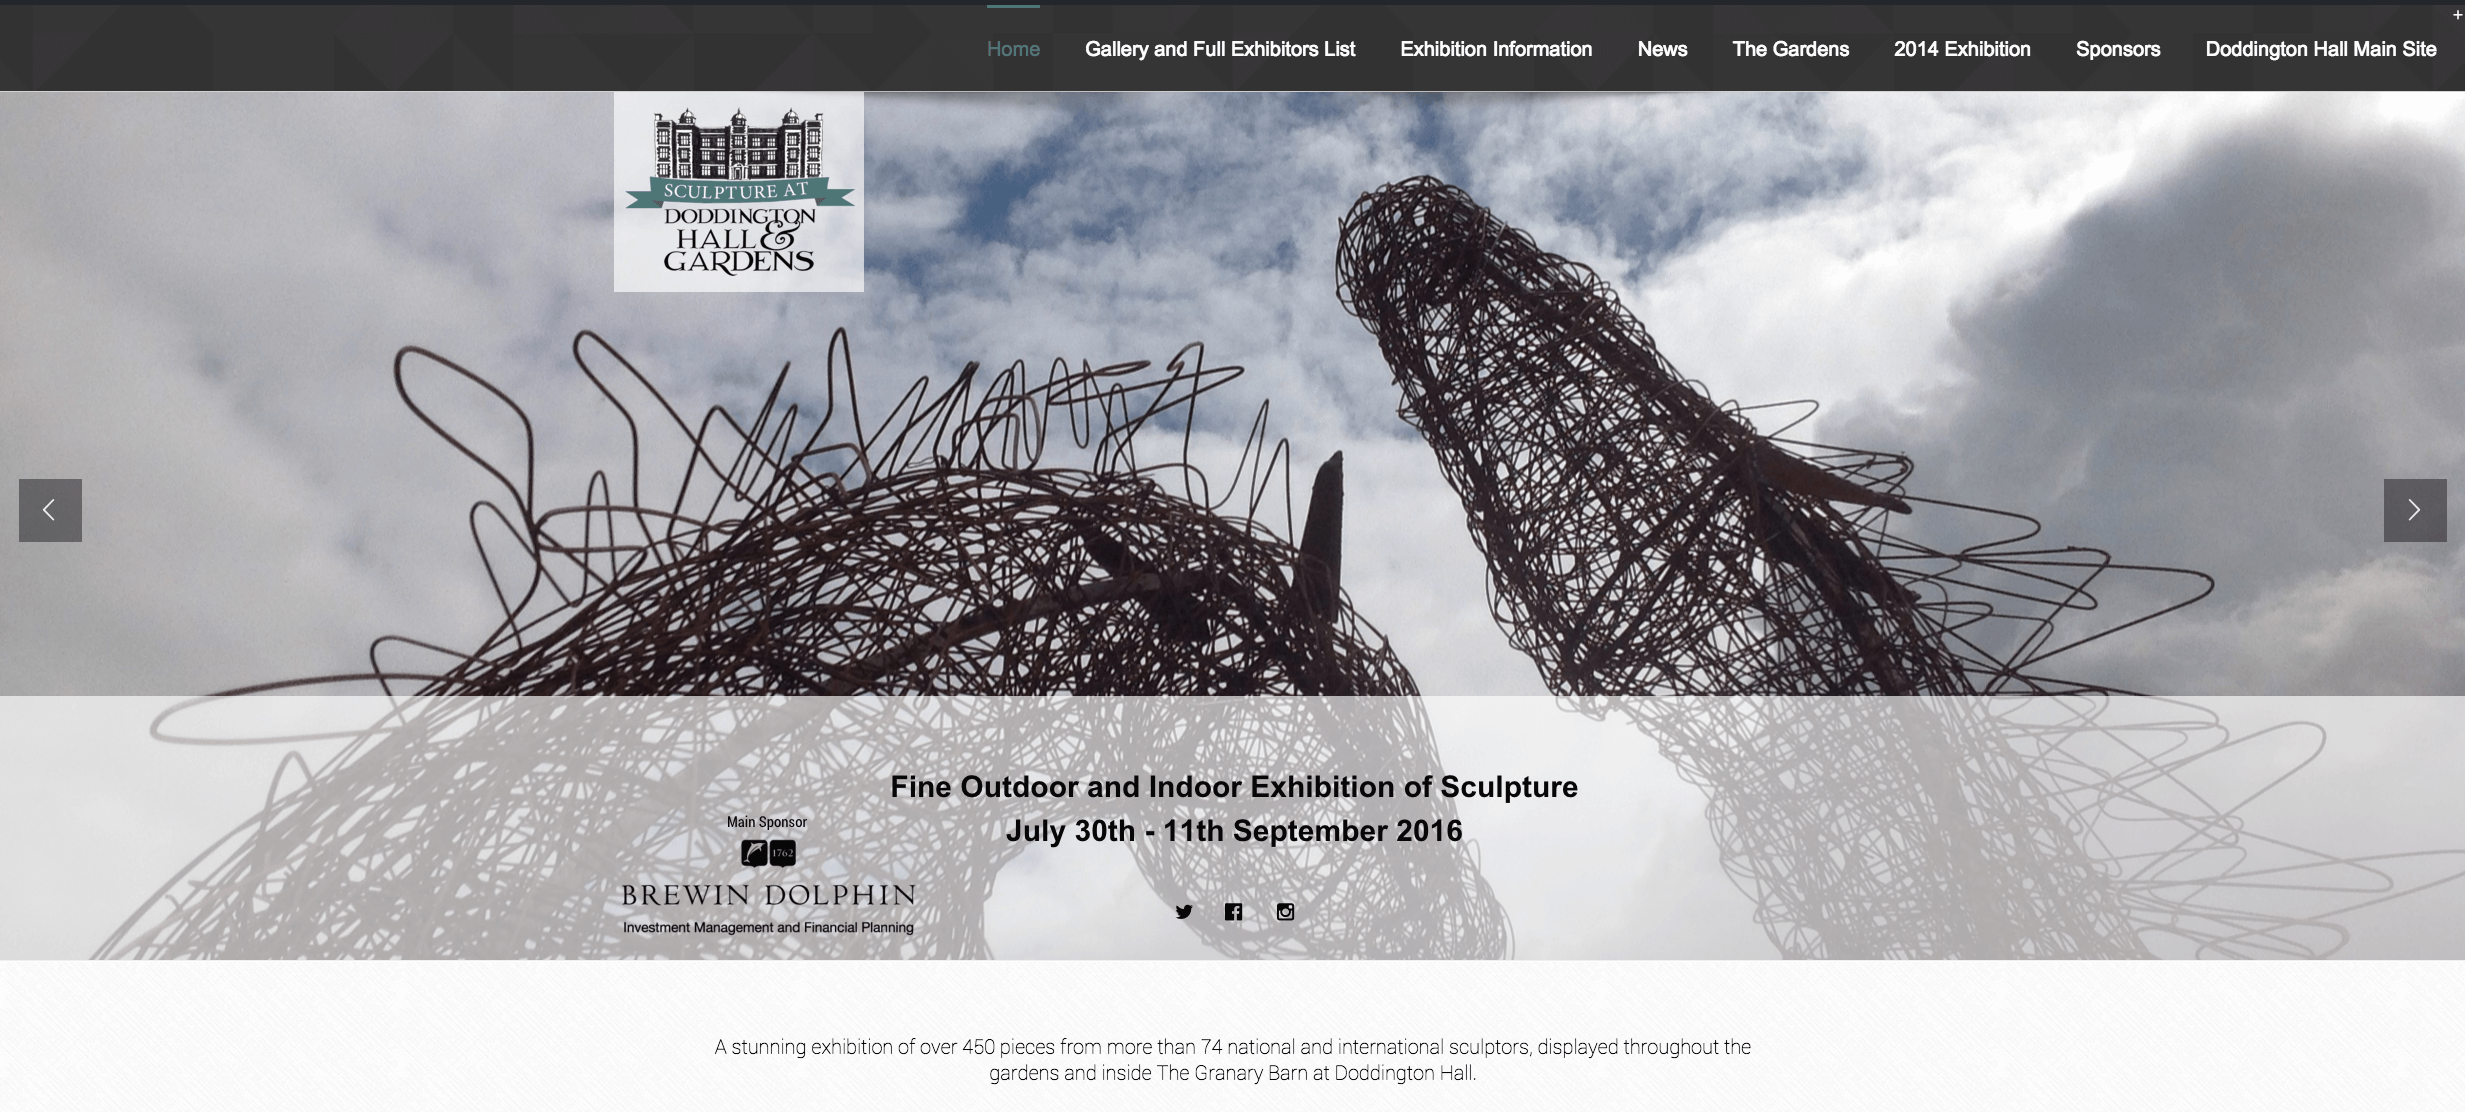 Sculpture at Doddington Hall Website Launches